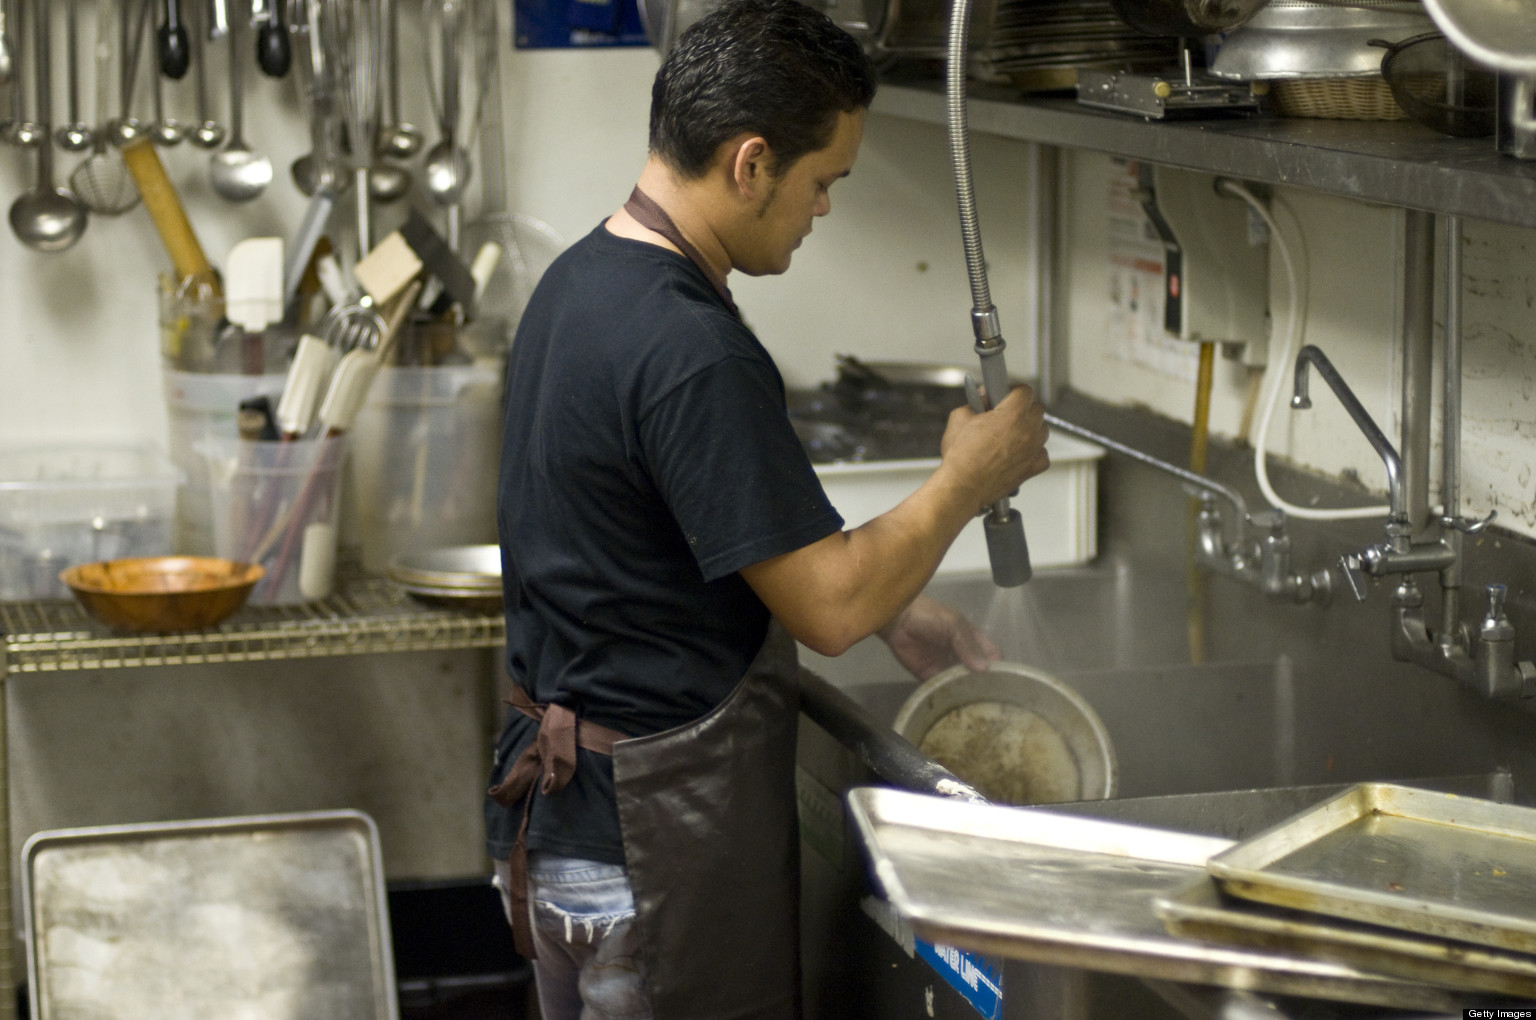 Lowest Paying Jobs In America 7 Out Of 10 Are In The Food Industry Huffpost